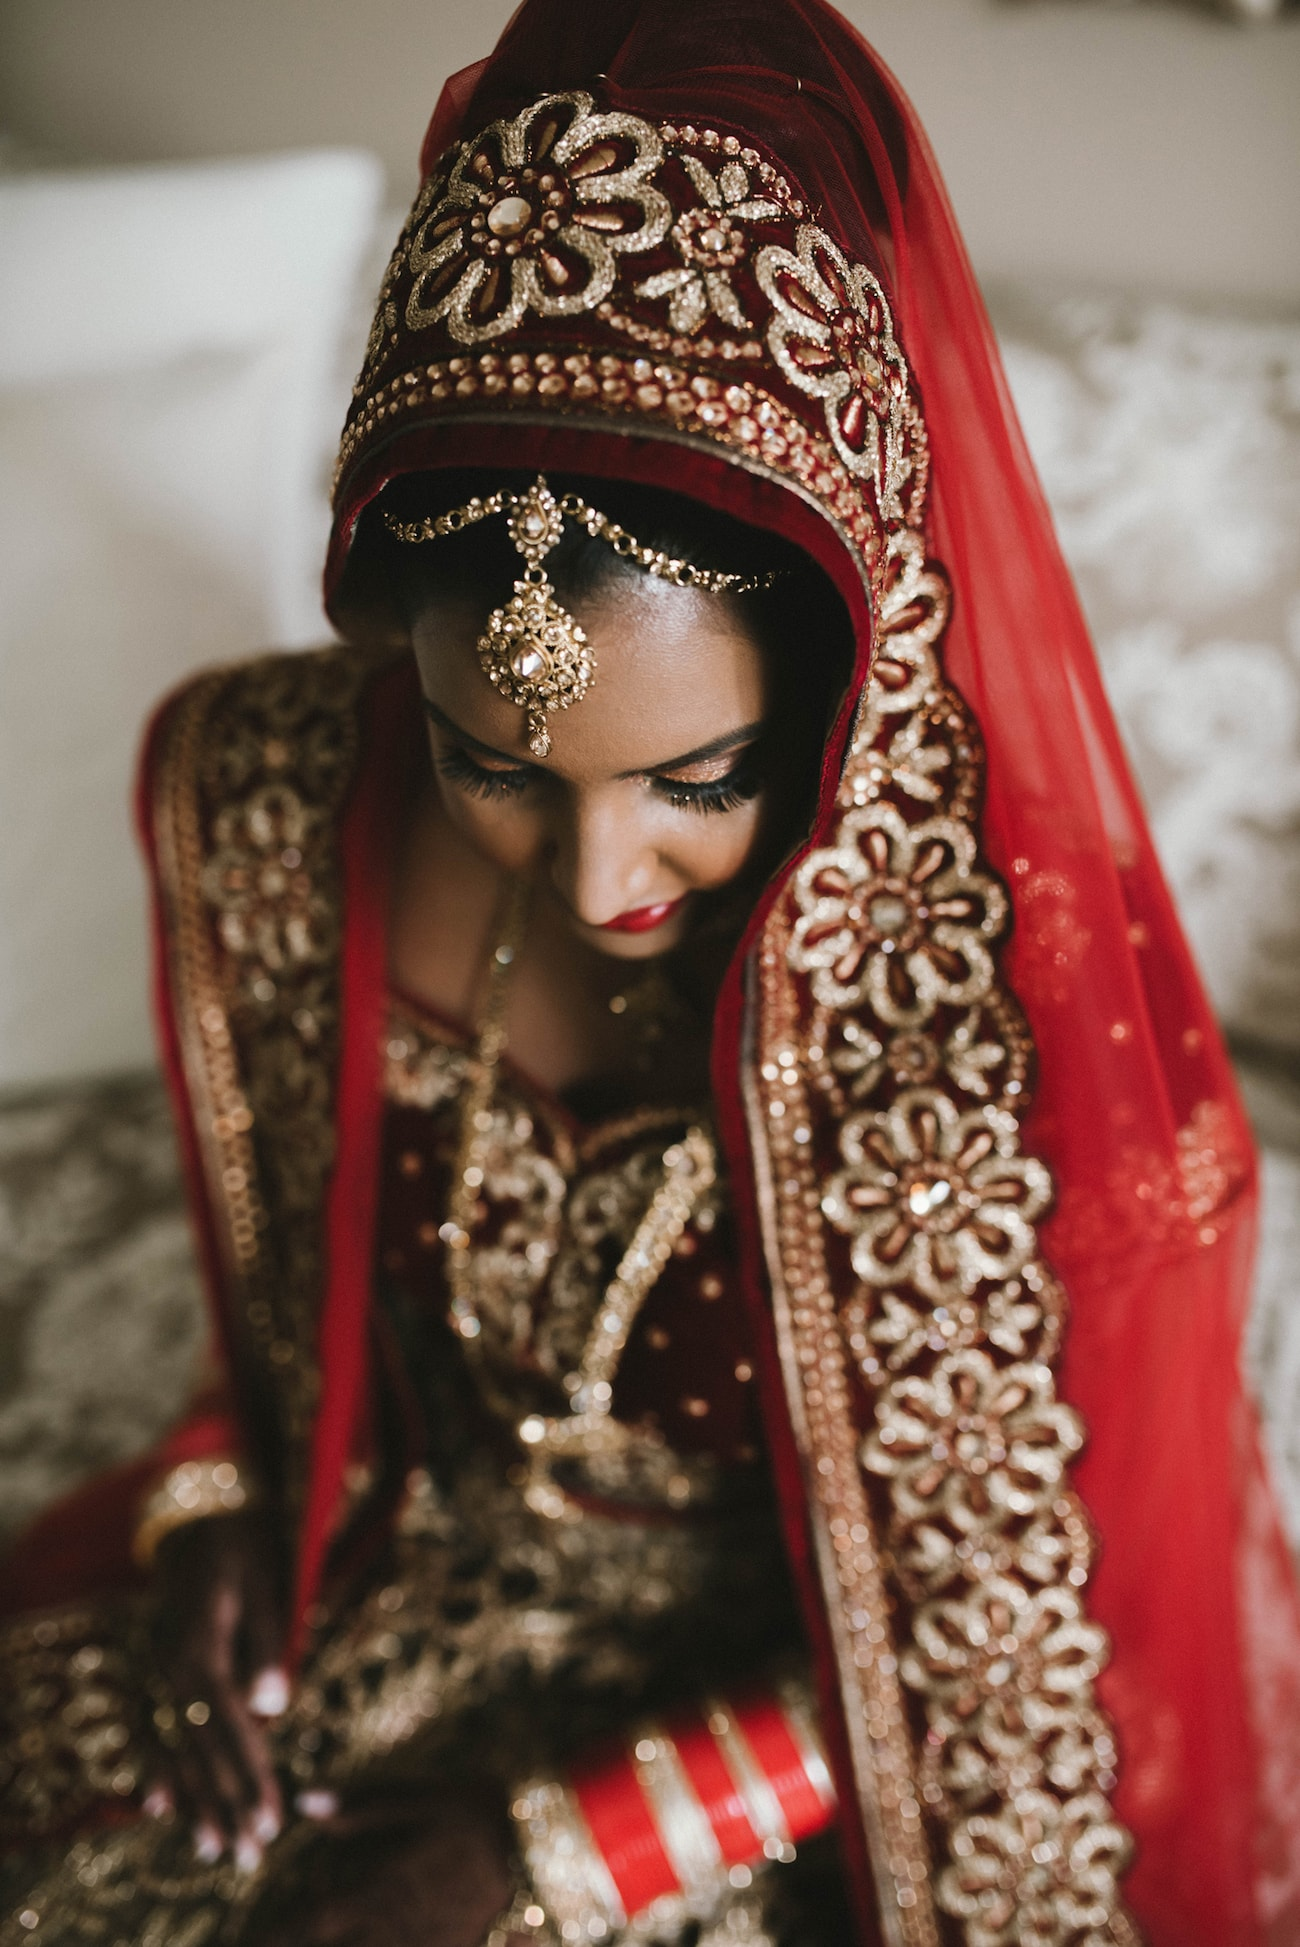 Bridal Headpiece with Polki Maang Tikka and Dupatta | Image: Claire Thomson